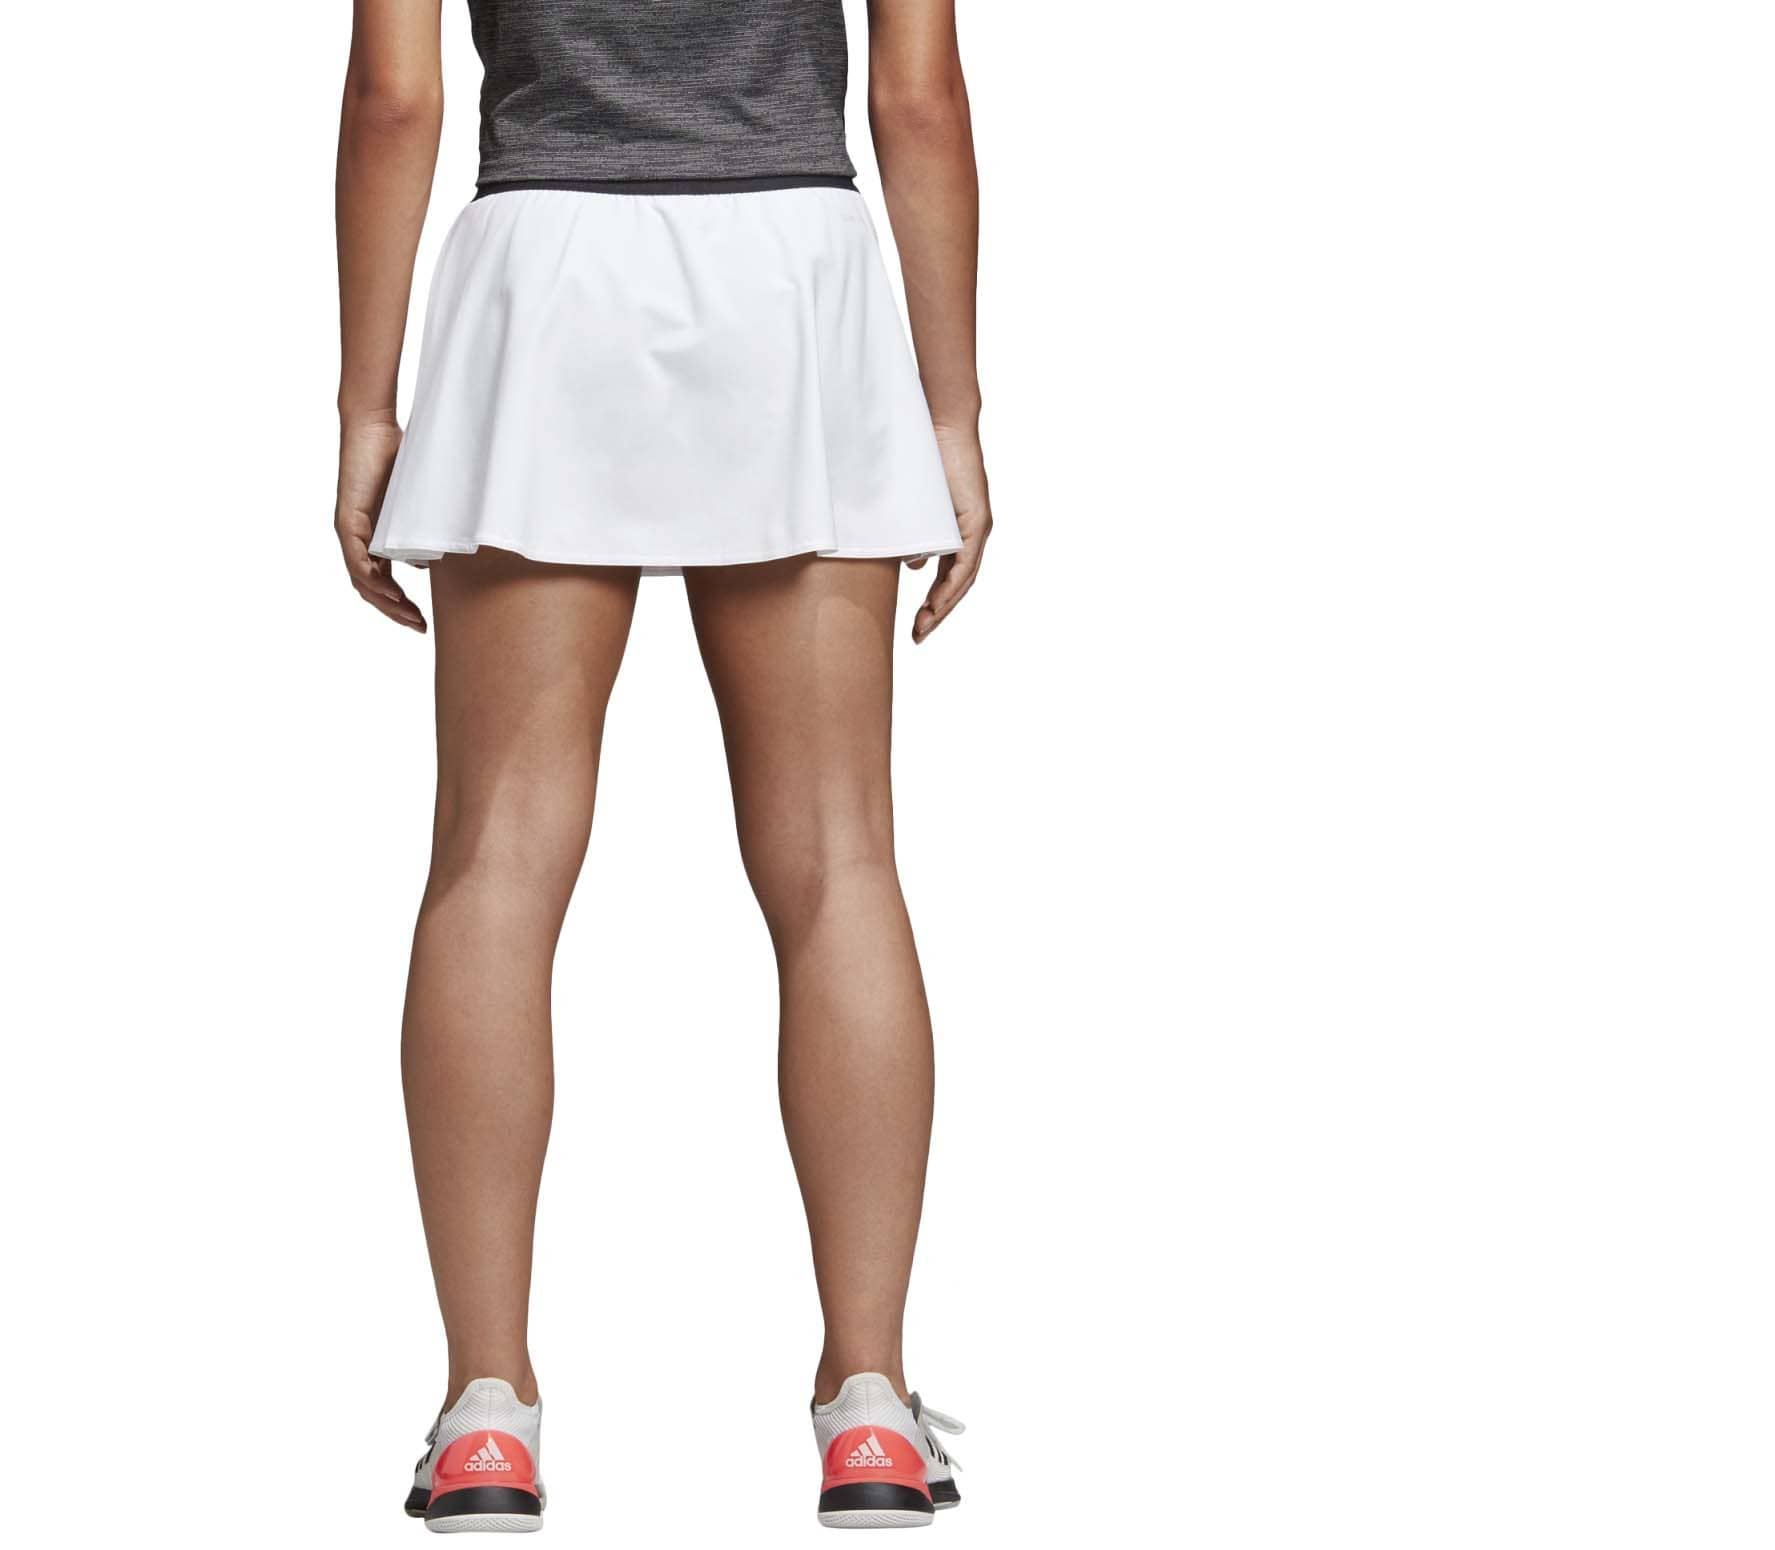 Adidas Escouade women's tennis skirt Damen weiß